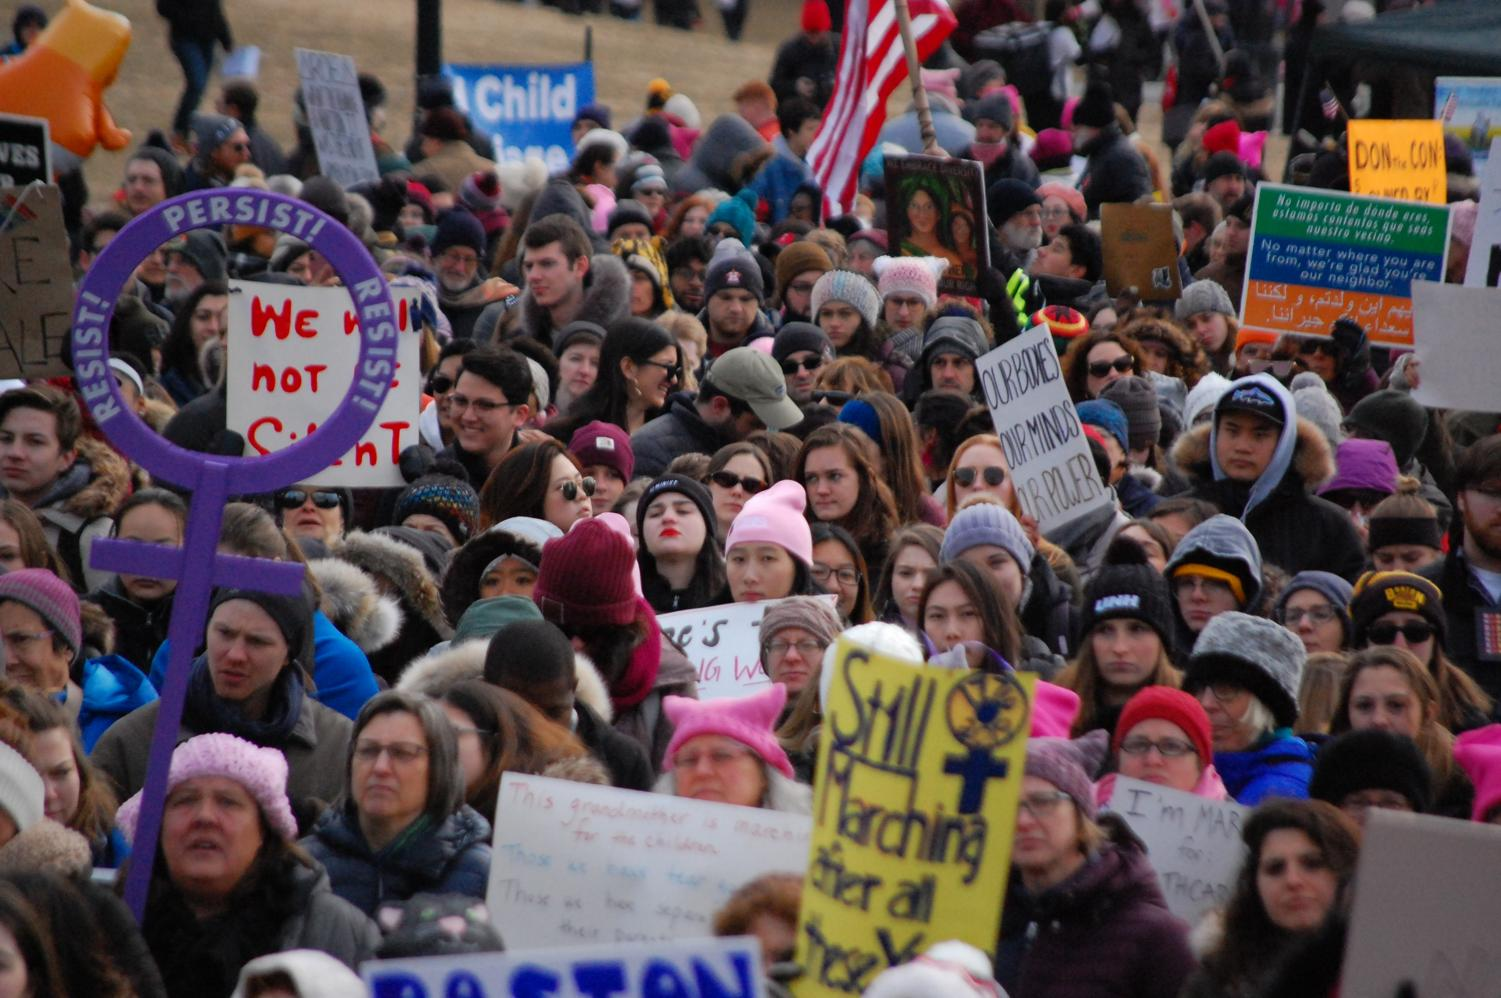 Around 10,000 people gathered in the Boston Common on Saturday as numerous civil rights activists spoke at the third Boston Women's March, headlined by Representative Ayanna Pressley.